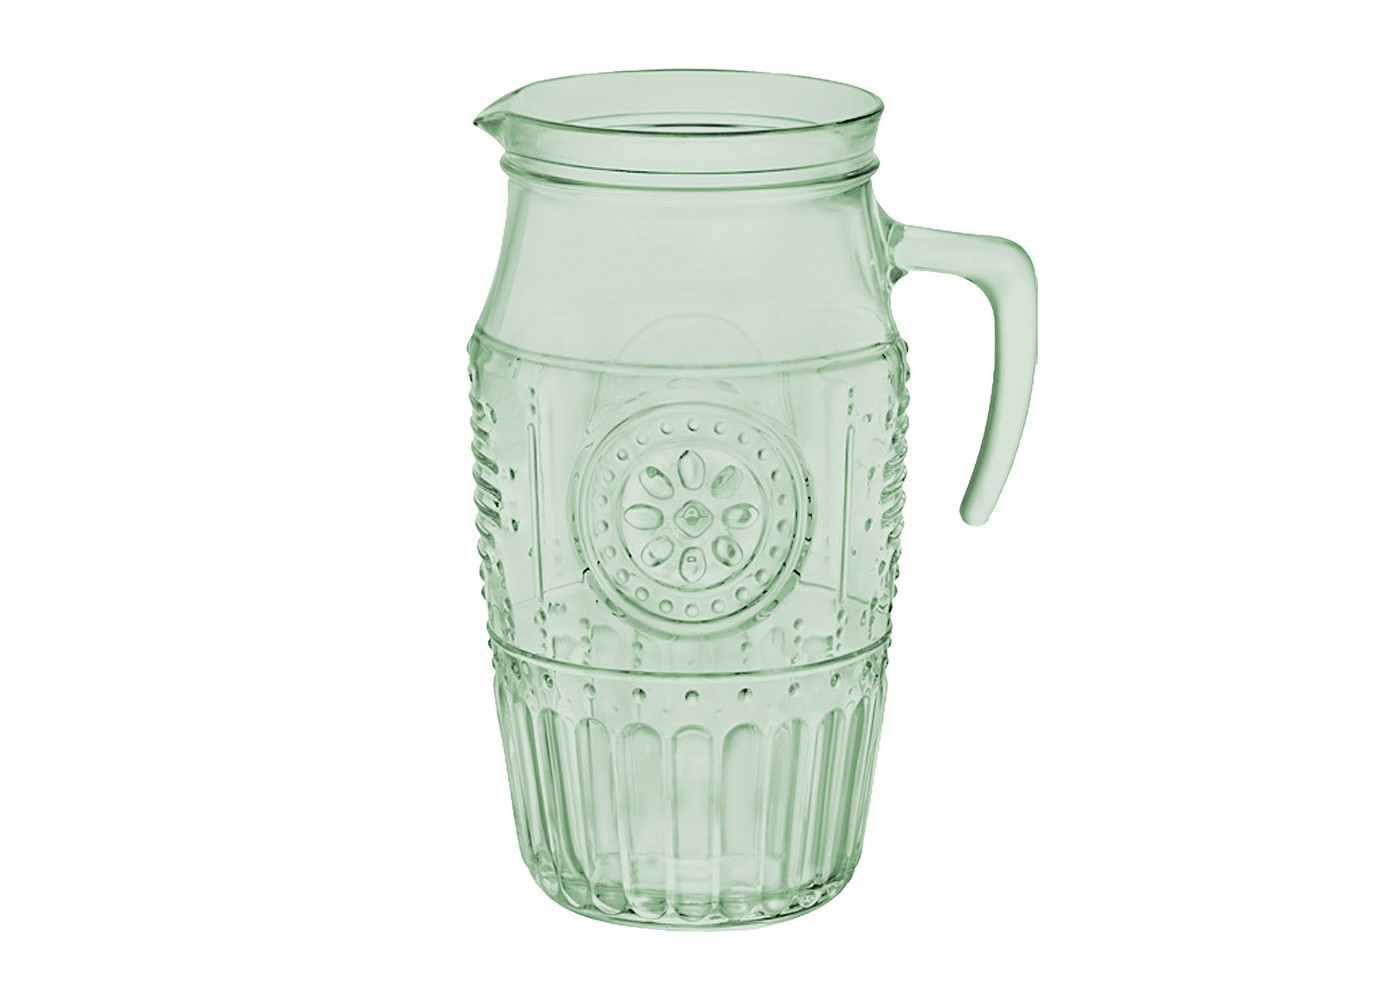 green pitcher.jpeg